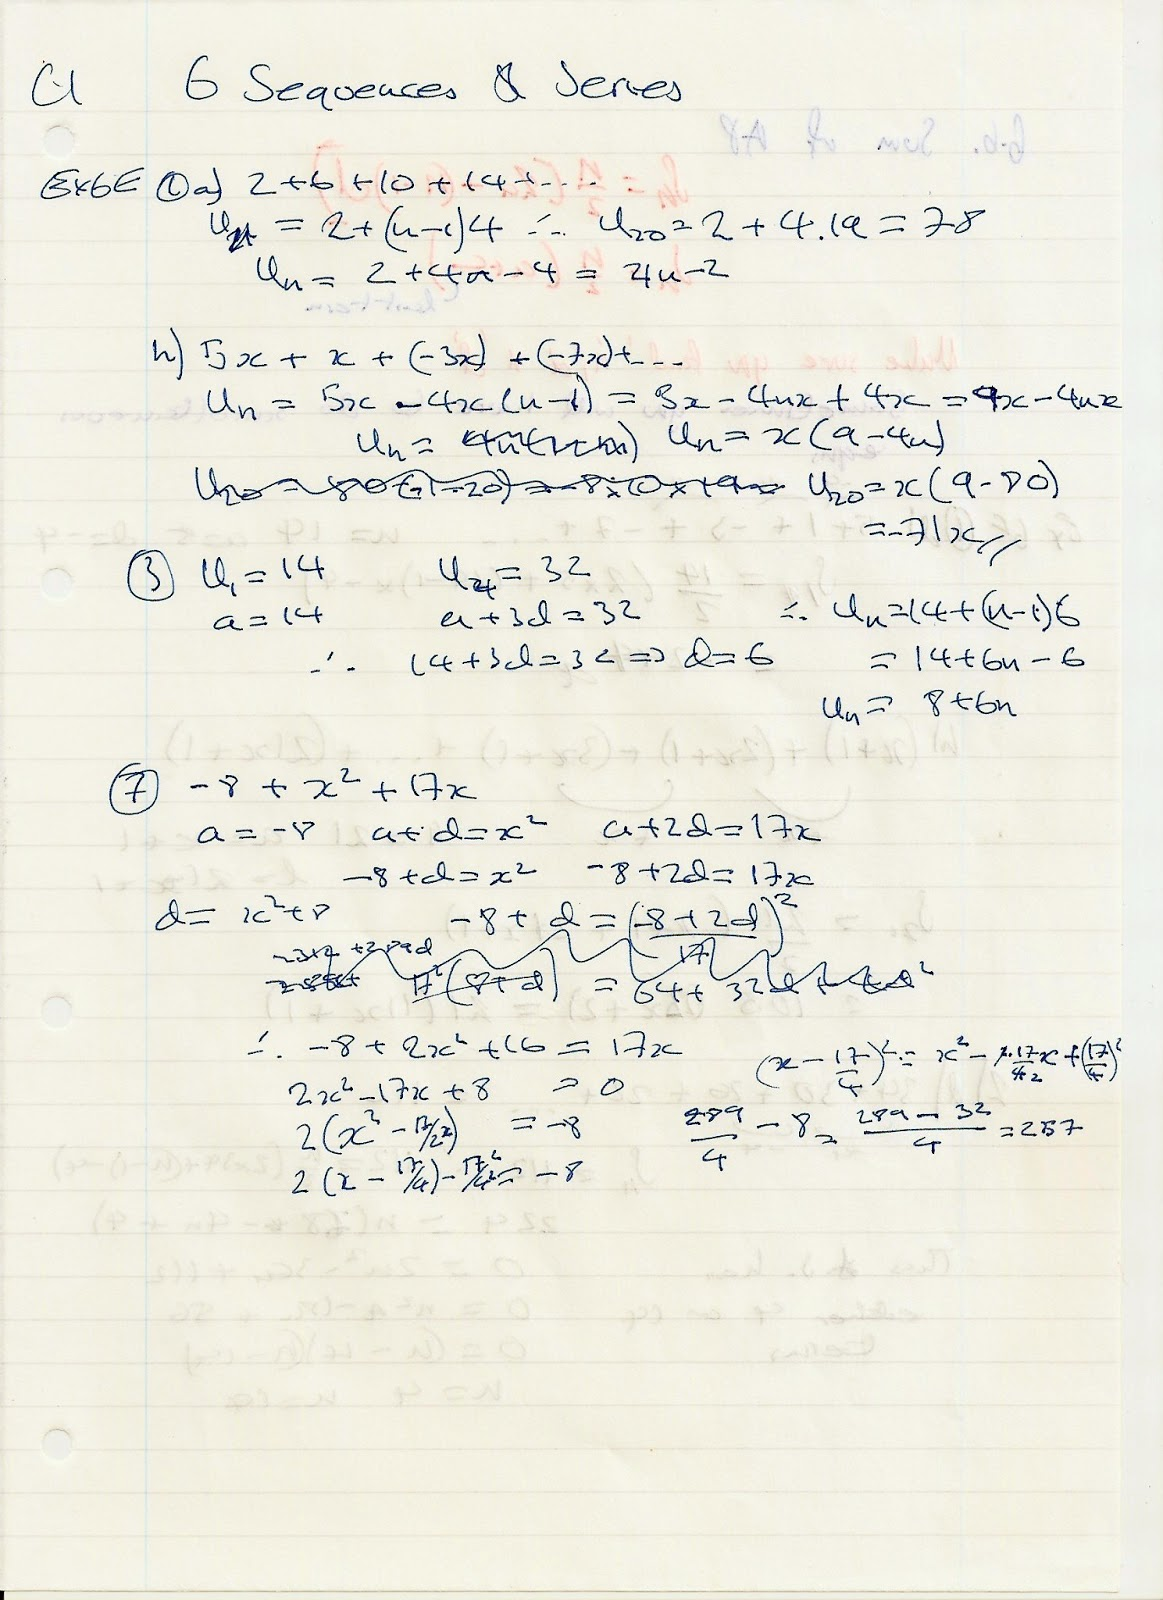 A Level Maths Notes Edexcel C1 6 Sequences And Series